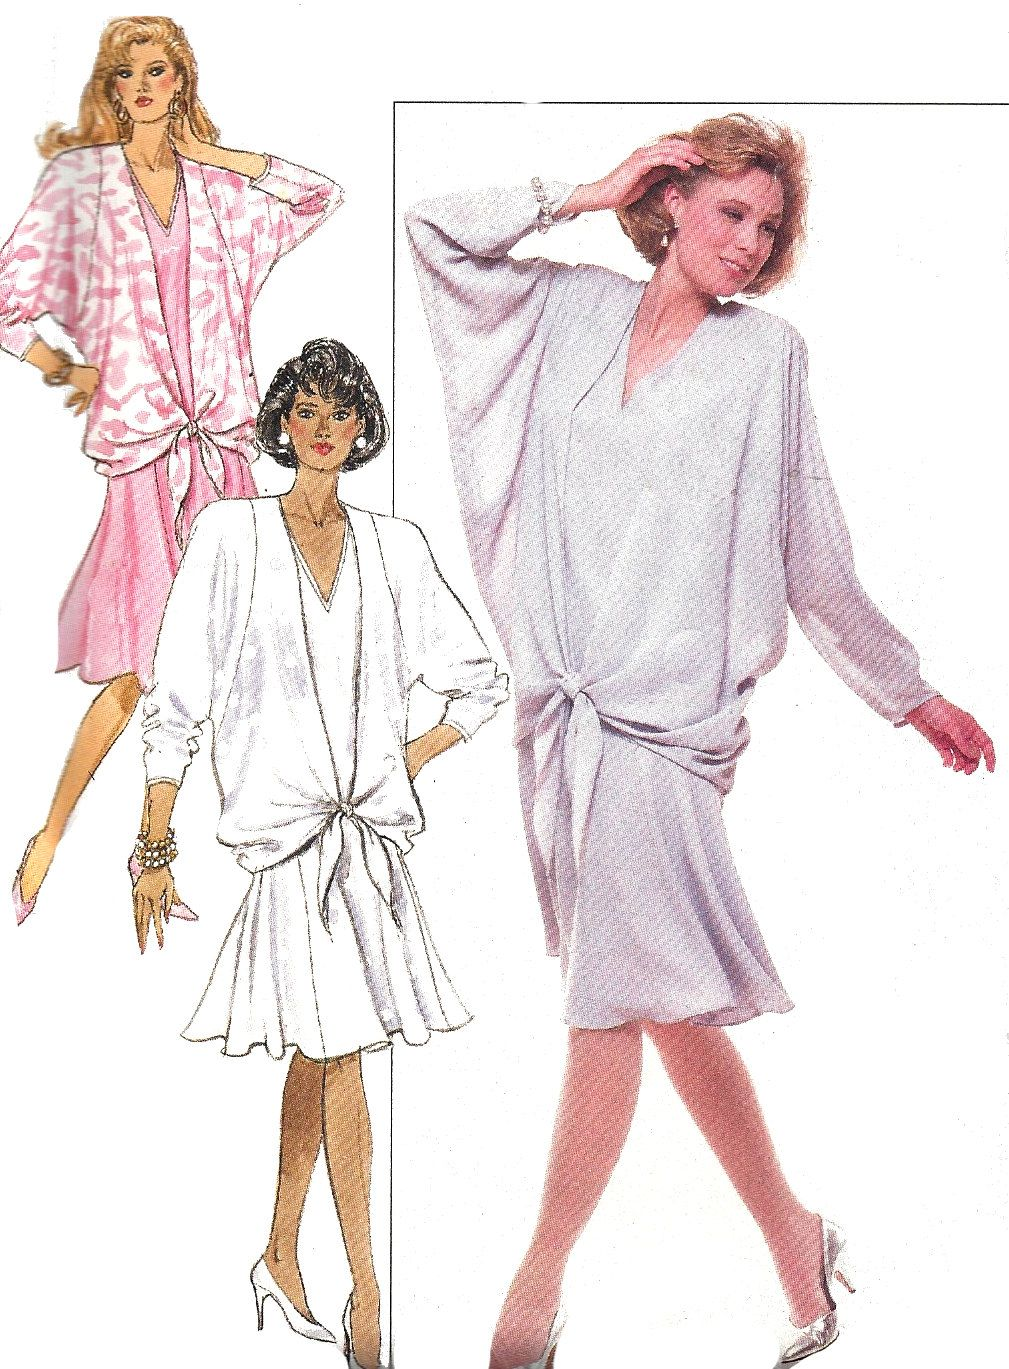 1980s Dress Pattern Vintage Butterick Sewing Uncut Pullover Women's Misses Size 20 - 24 Bust 42 - 46 Inches by SelmaLee on Etsy